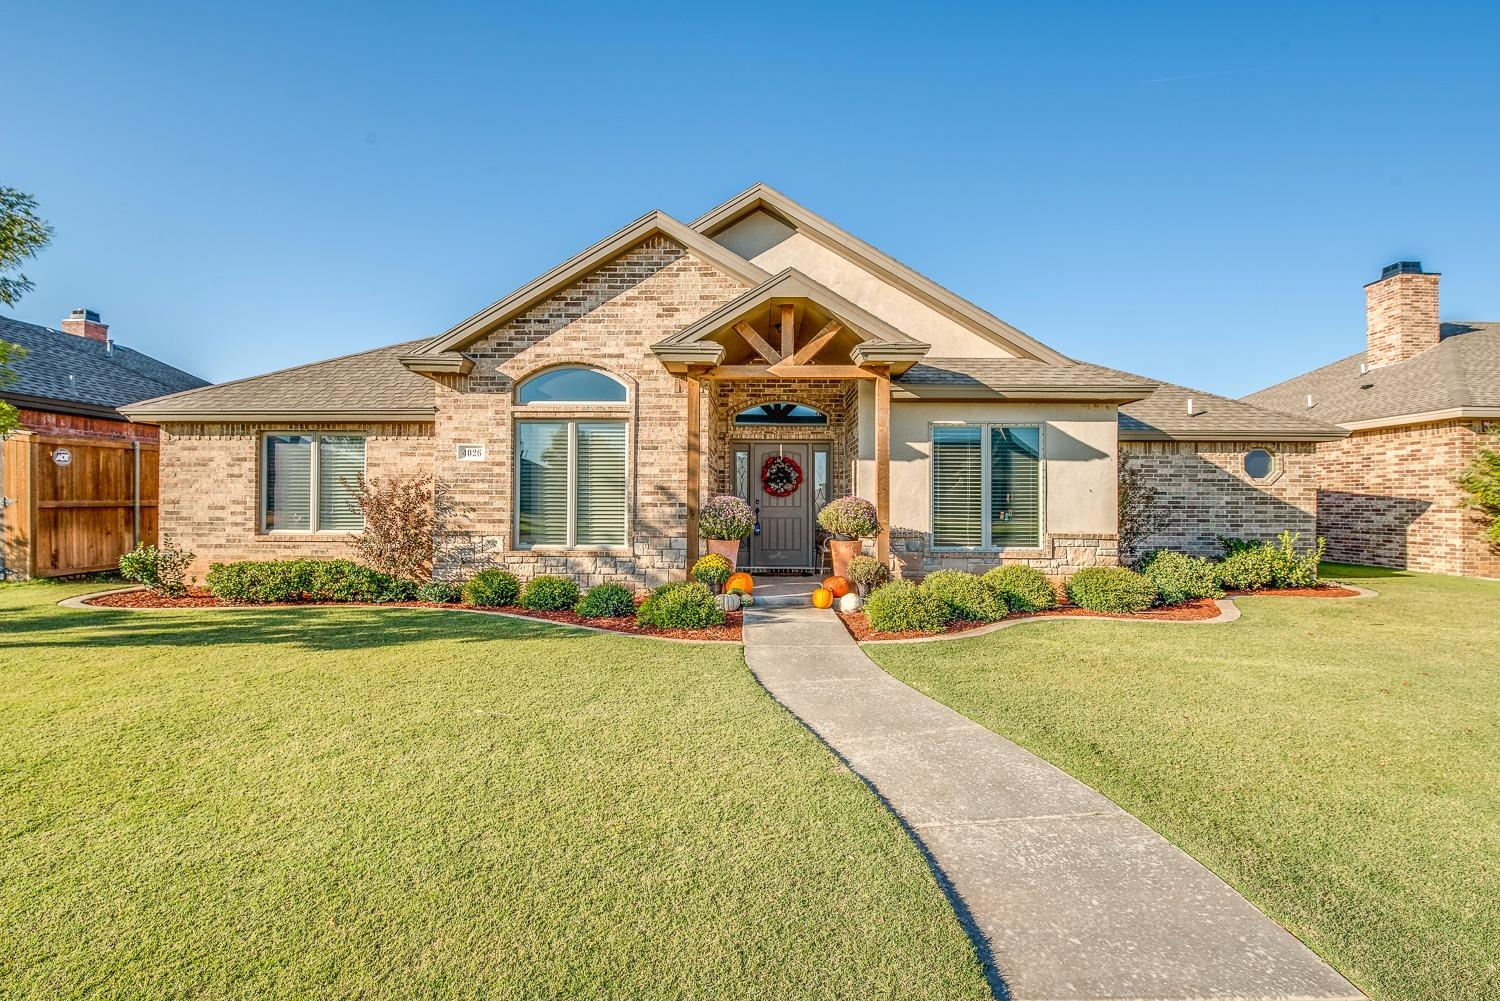 4026 125th Street, Lubbock in Lubbock County, TX 79423 Home for Sale